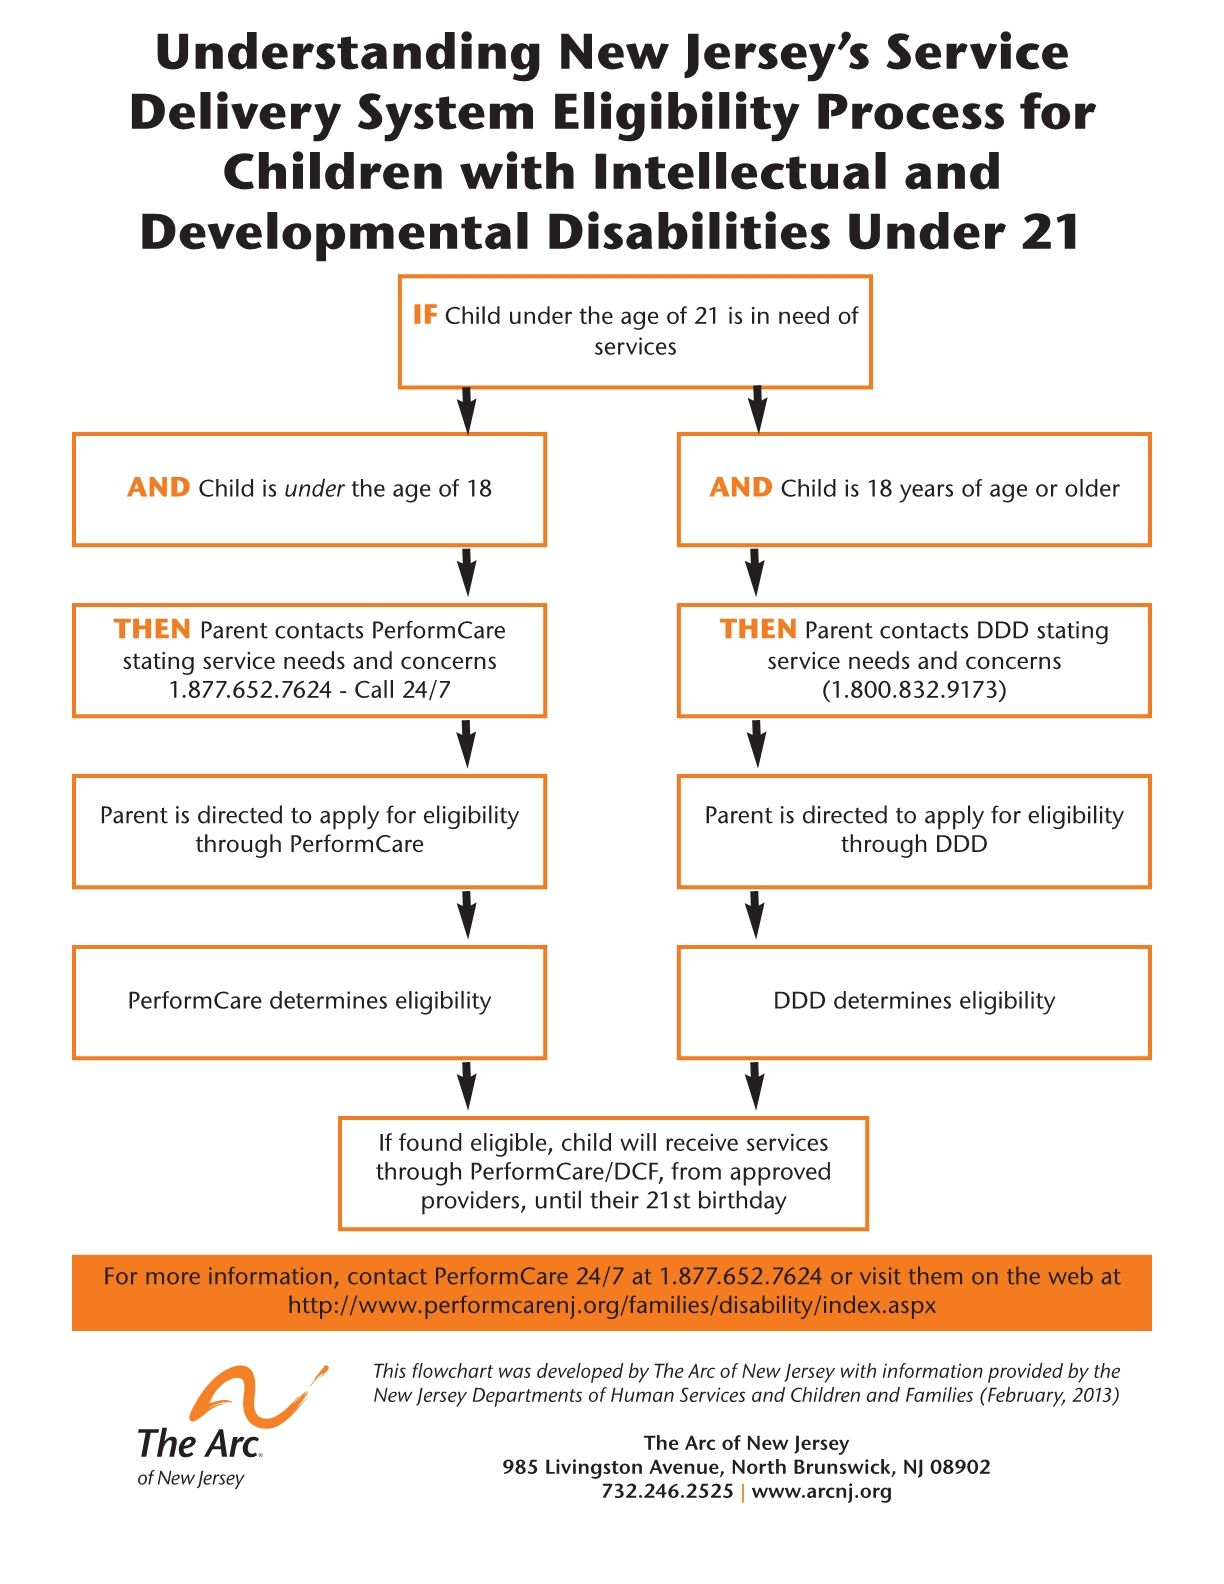 Understanding Developmental Disability State Eligibility Under 21